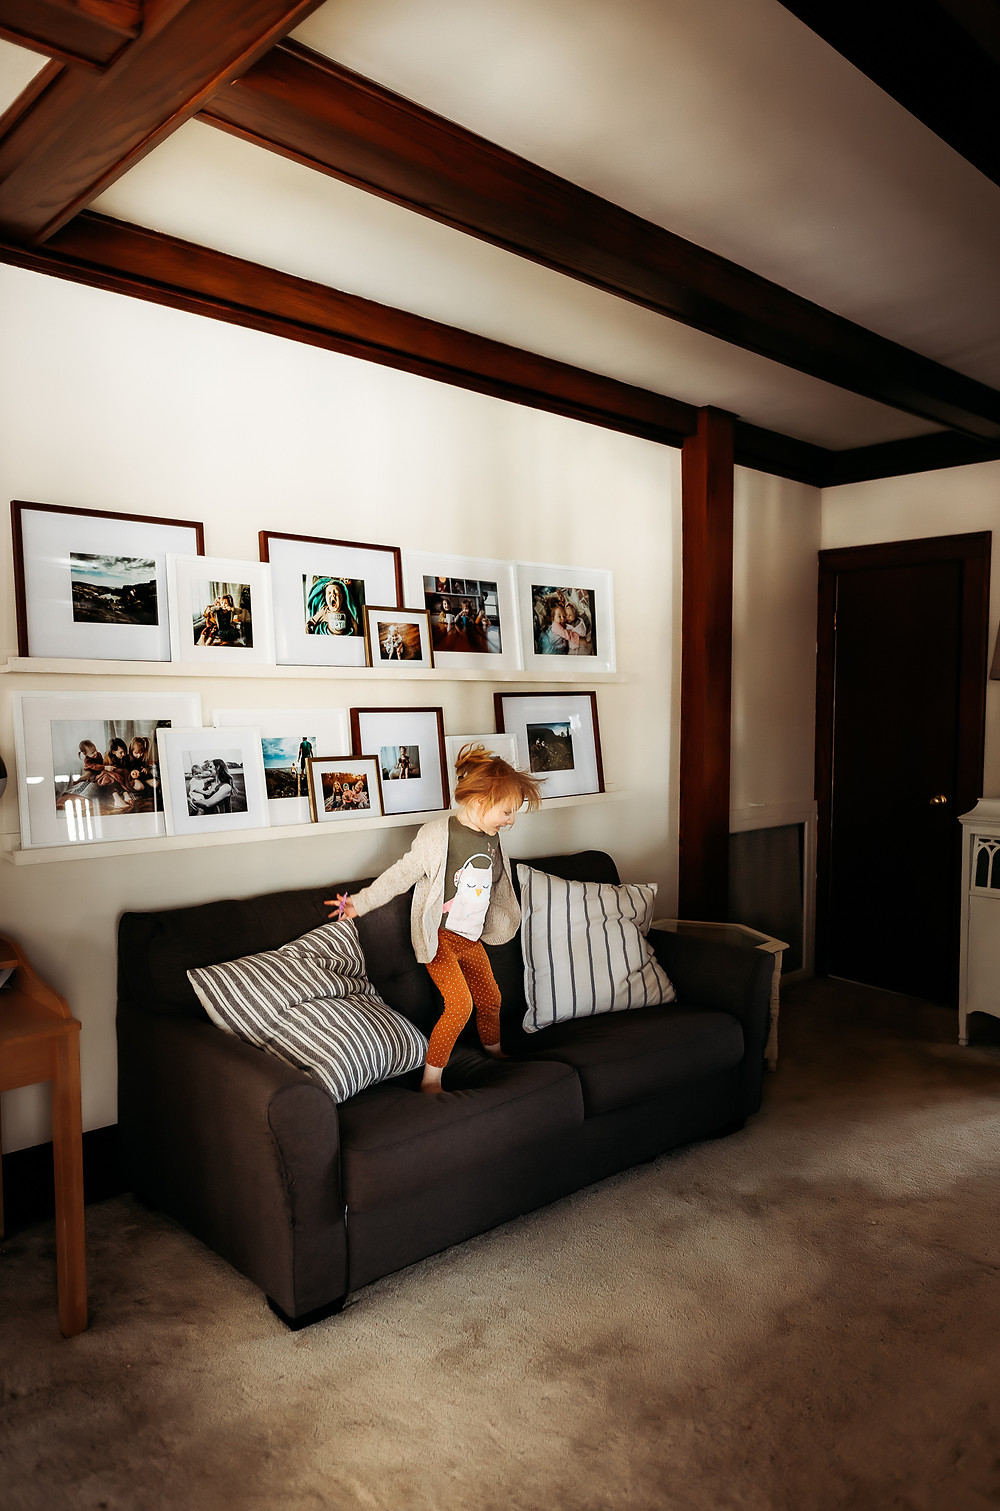 Owatonna family photographer, little girl jumping on couch with gallery wall of photos behind her